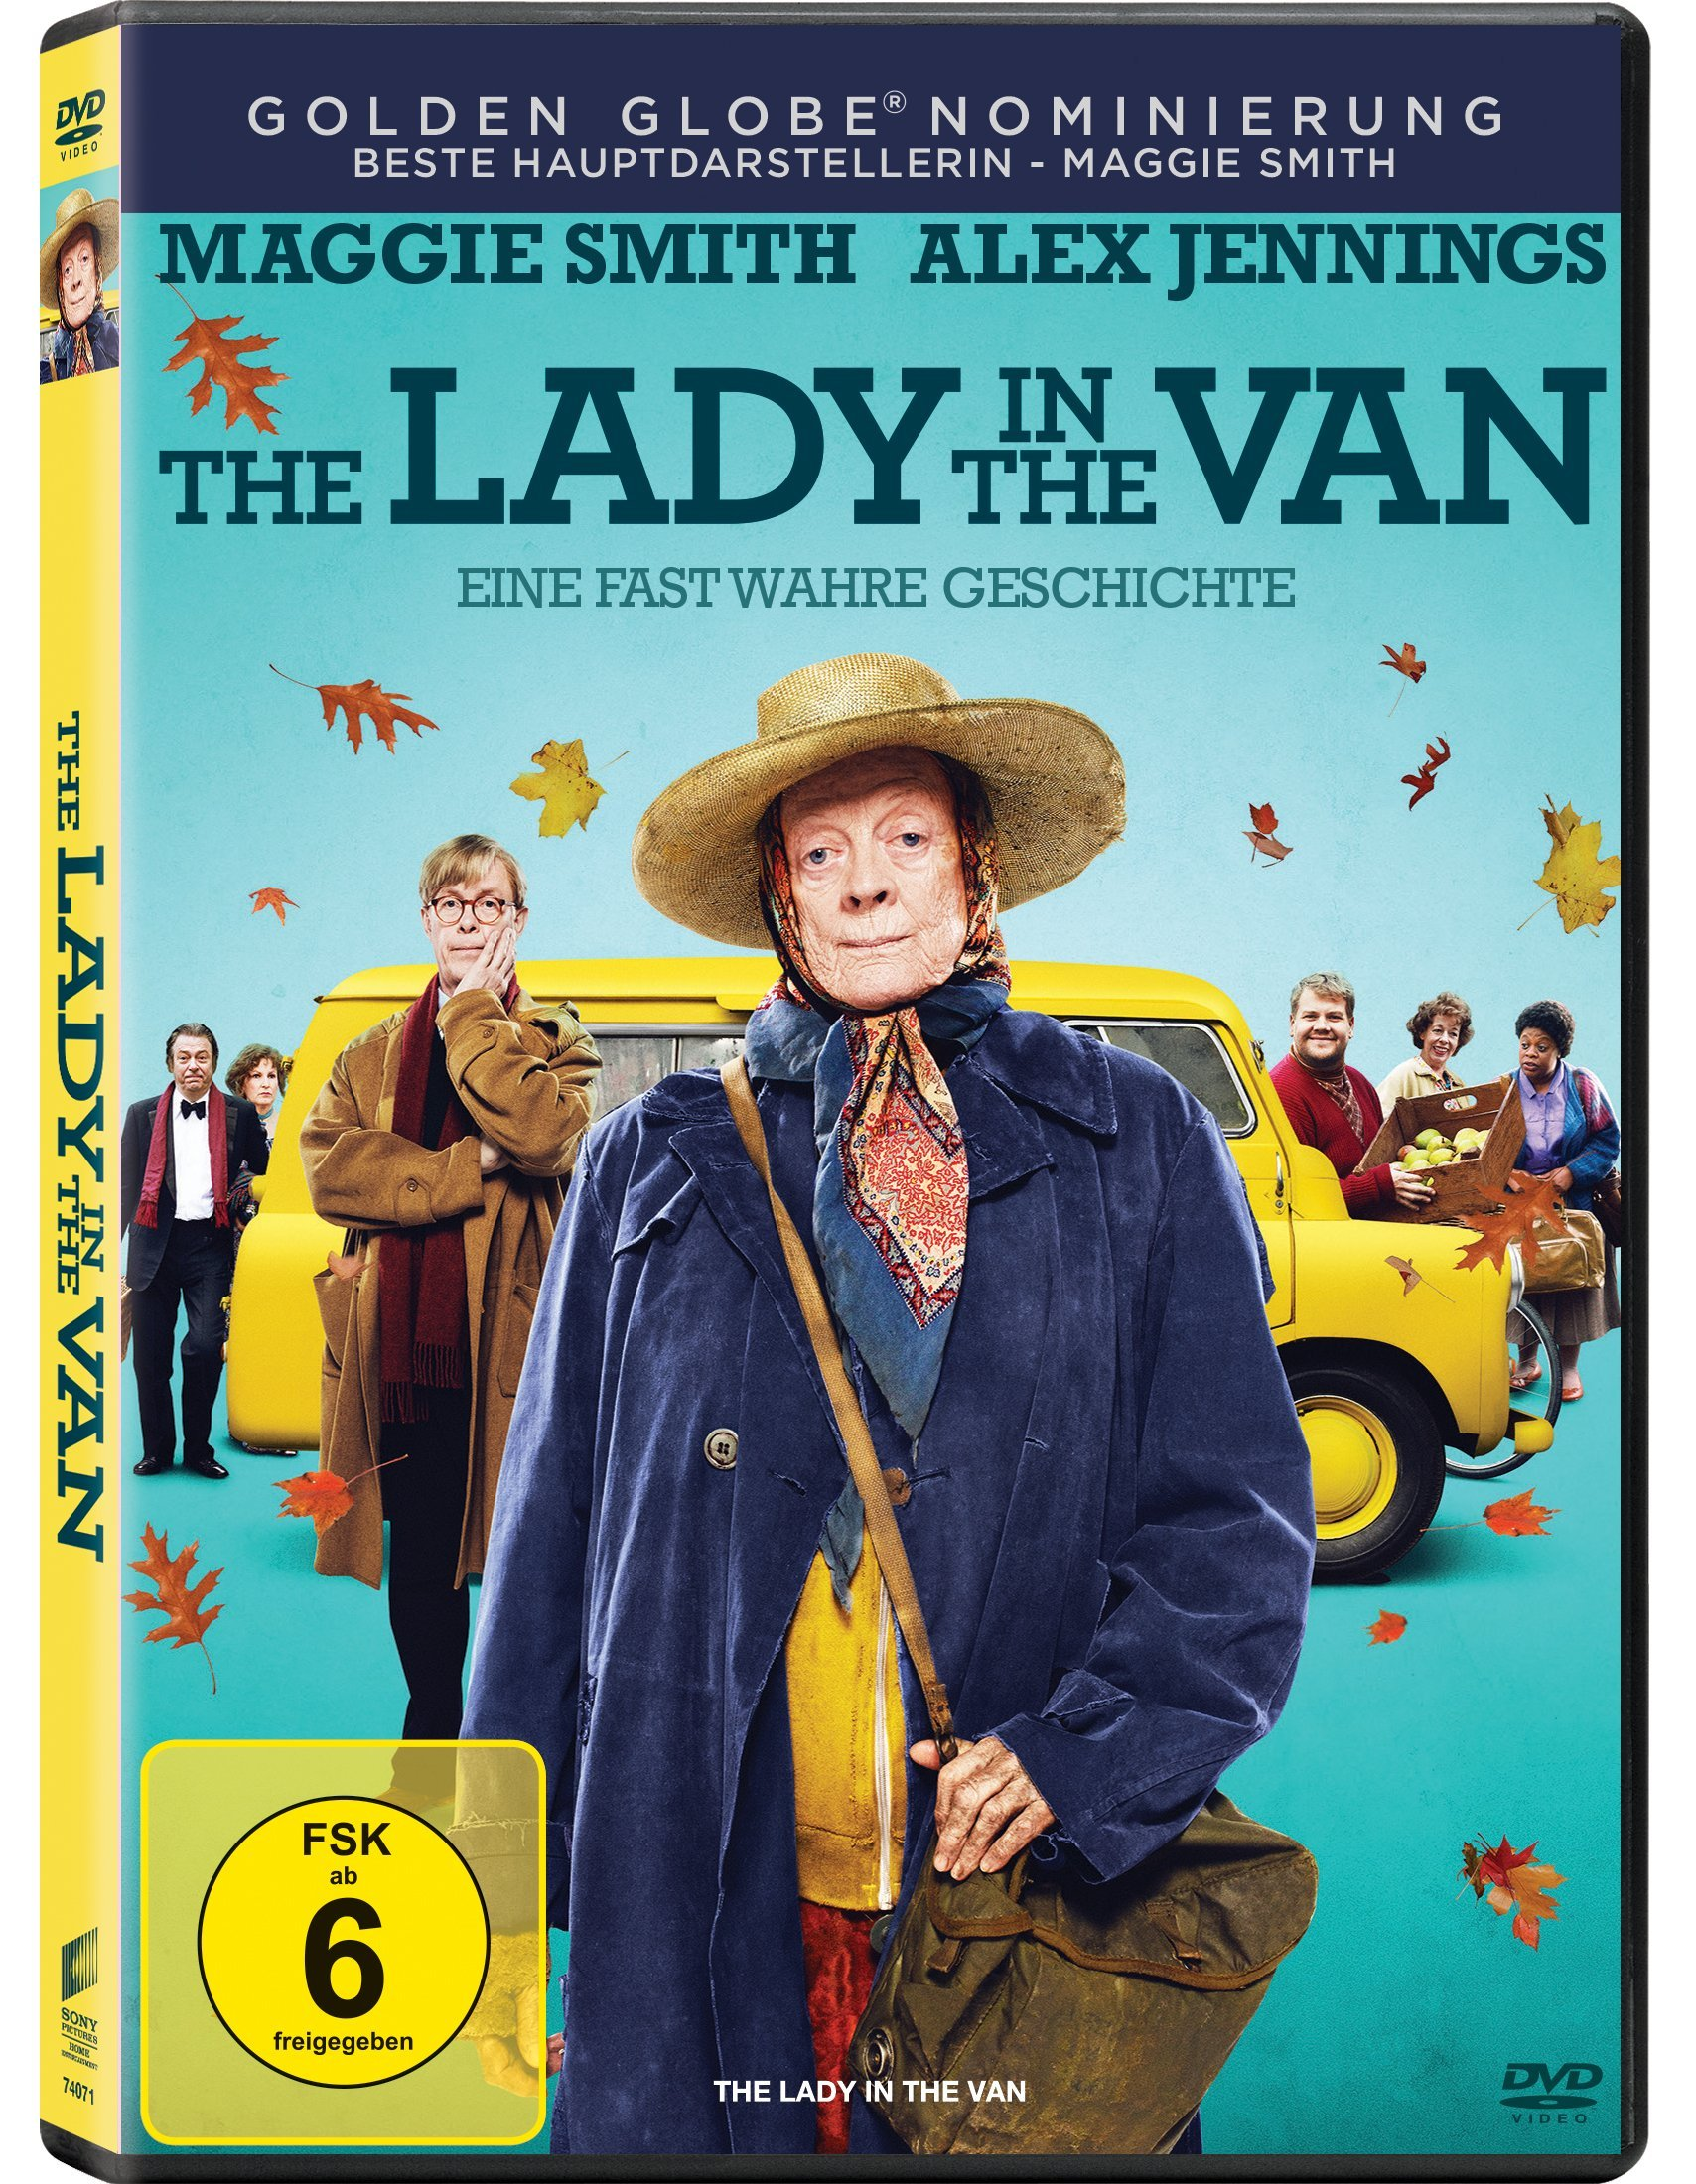 : The Lady in the Van German 2015 Ac3 BdriP x264-Xf